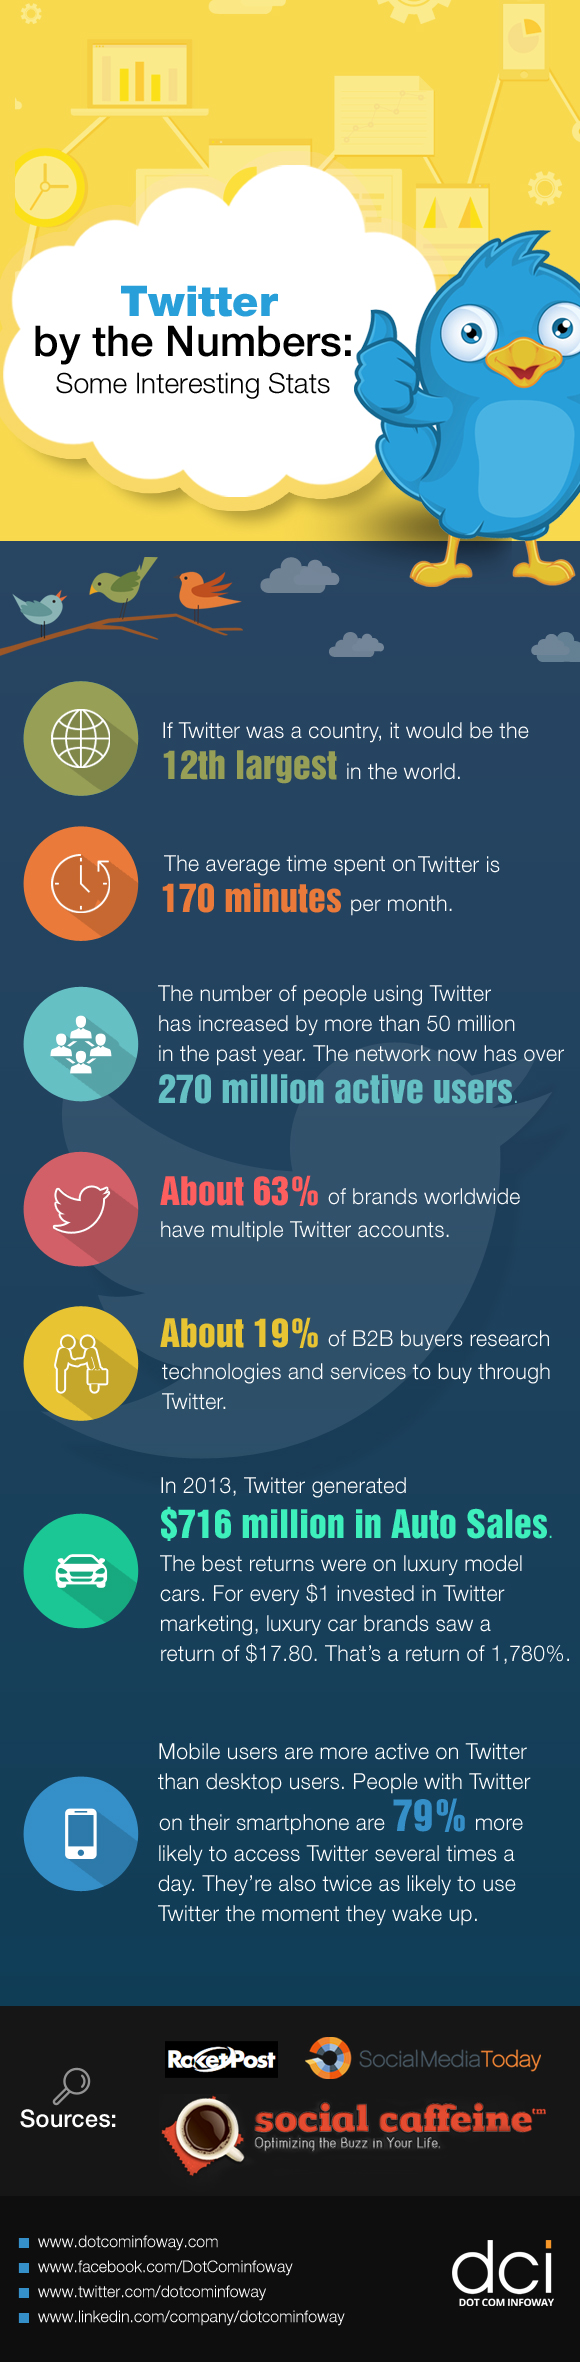 twitter-by-the-numbers-some-interesting-stats_5524f4cd6c631